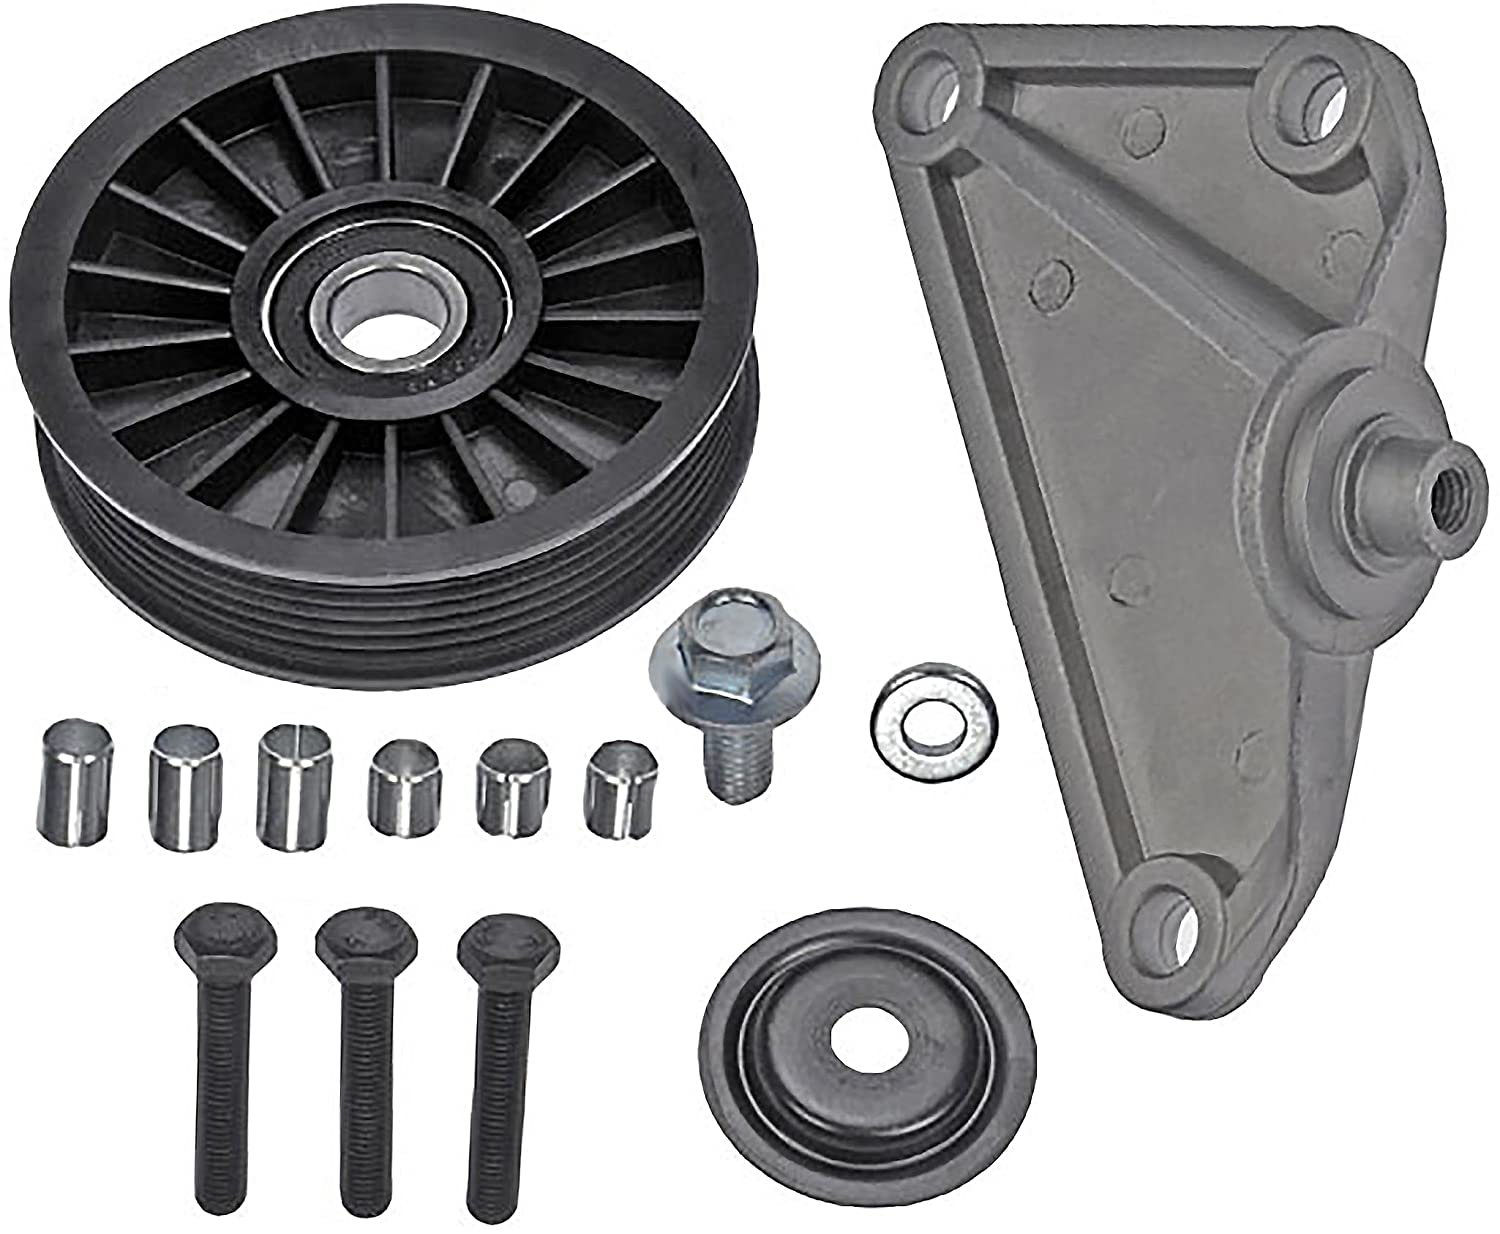 APDTY 45385 Air Conditioning Bypass Pulley Fits 2002-2005 Ford Explorer, 2005 Ford Explorer Sport Trac / 2002-2005 Mercury Mountaineer (Check Fitment Chart)